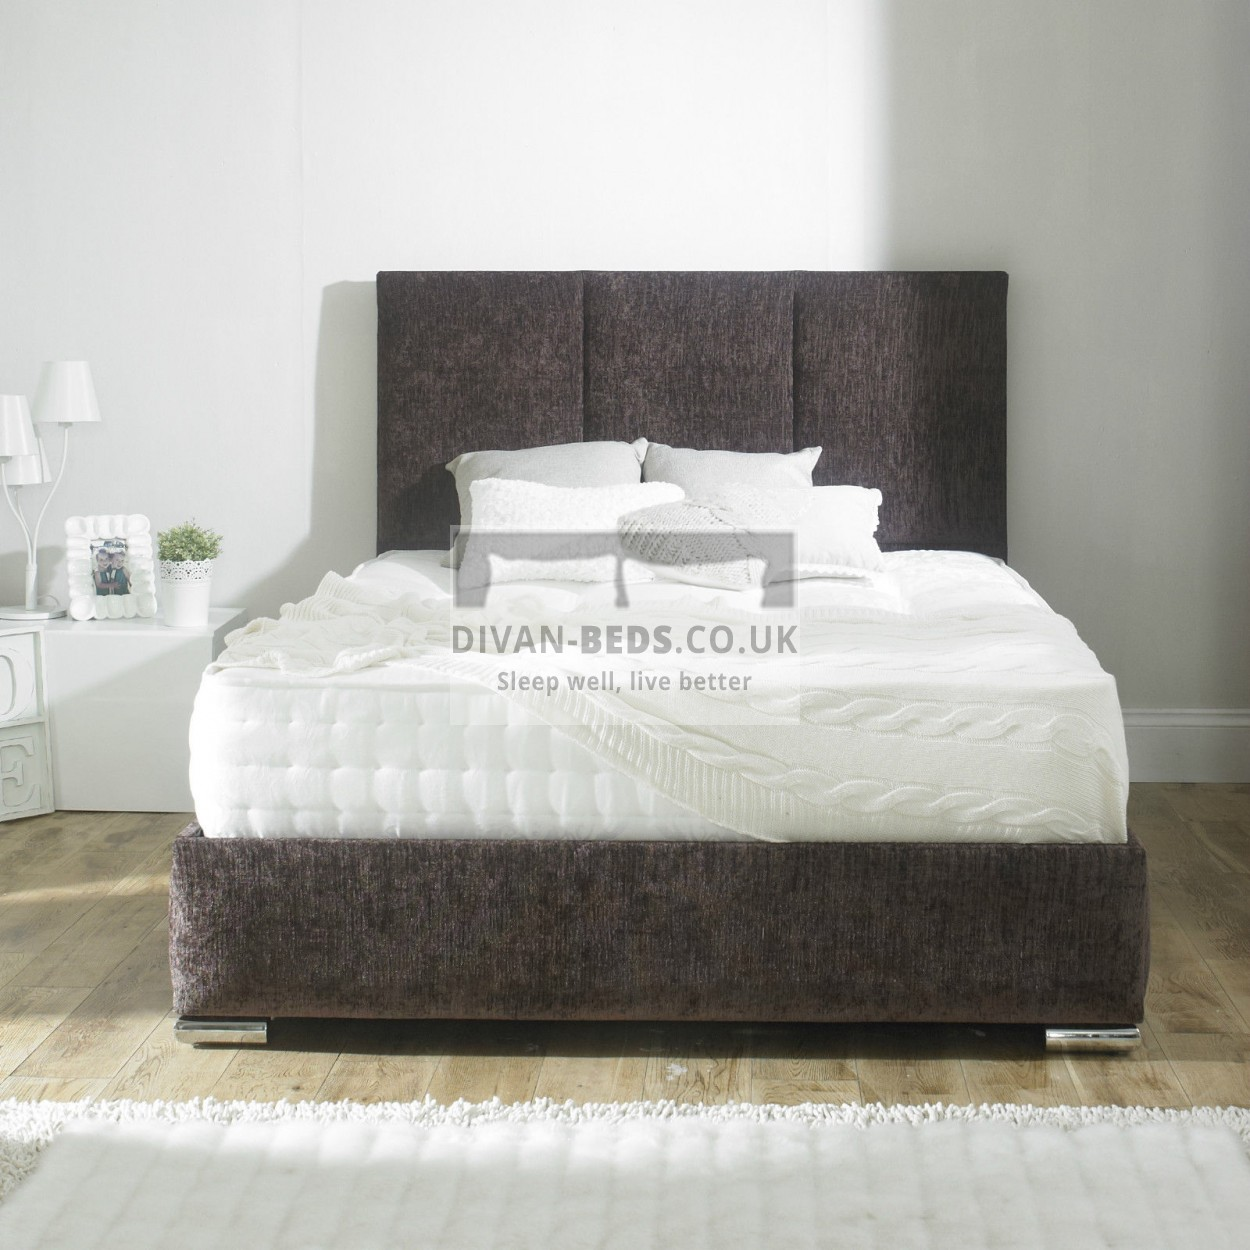 Talia fabric upholstered bed frame guaranteed cheapest for Upholstered bed frame